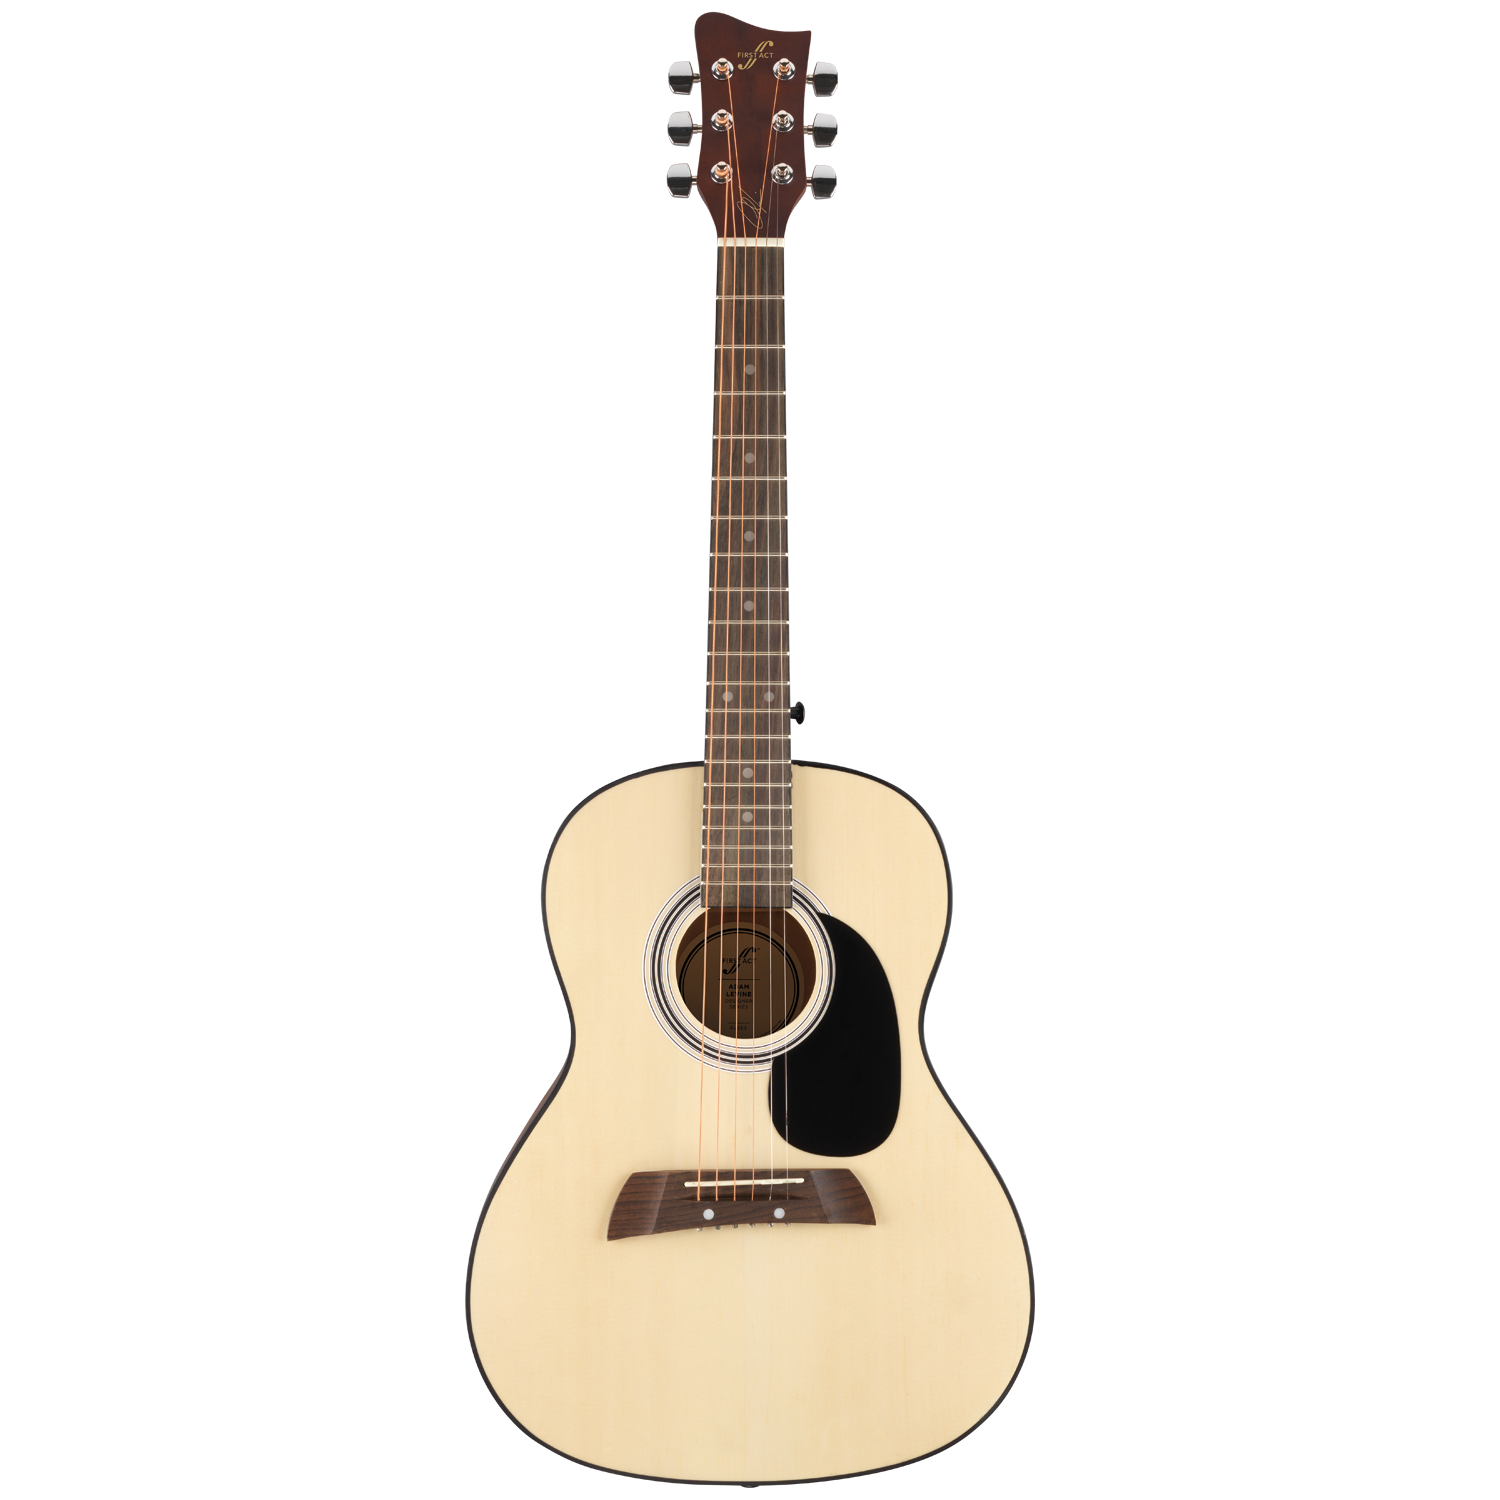 First Act Guitars Prices : adam levine acoustic guitar pack with strap picks by first act al363 musical ~ Vivirlamusica.com Haus und Dekorationen